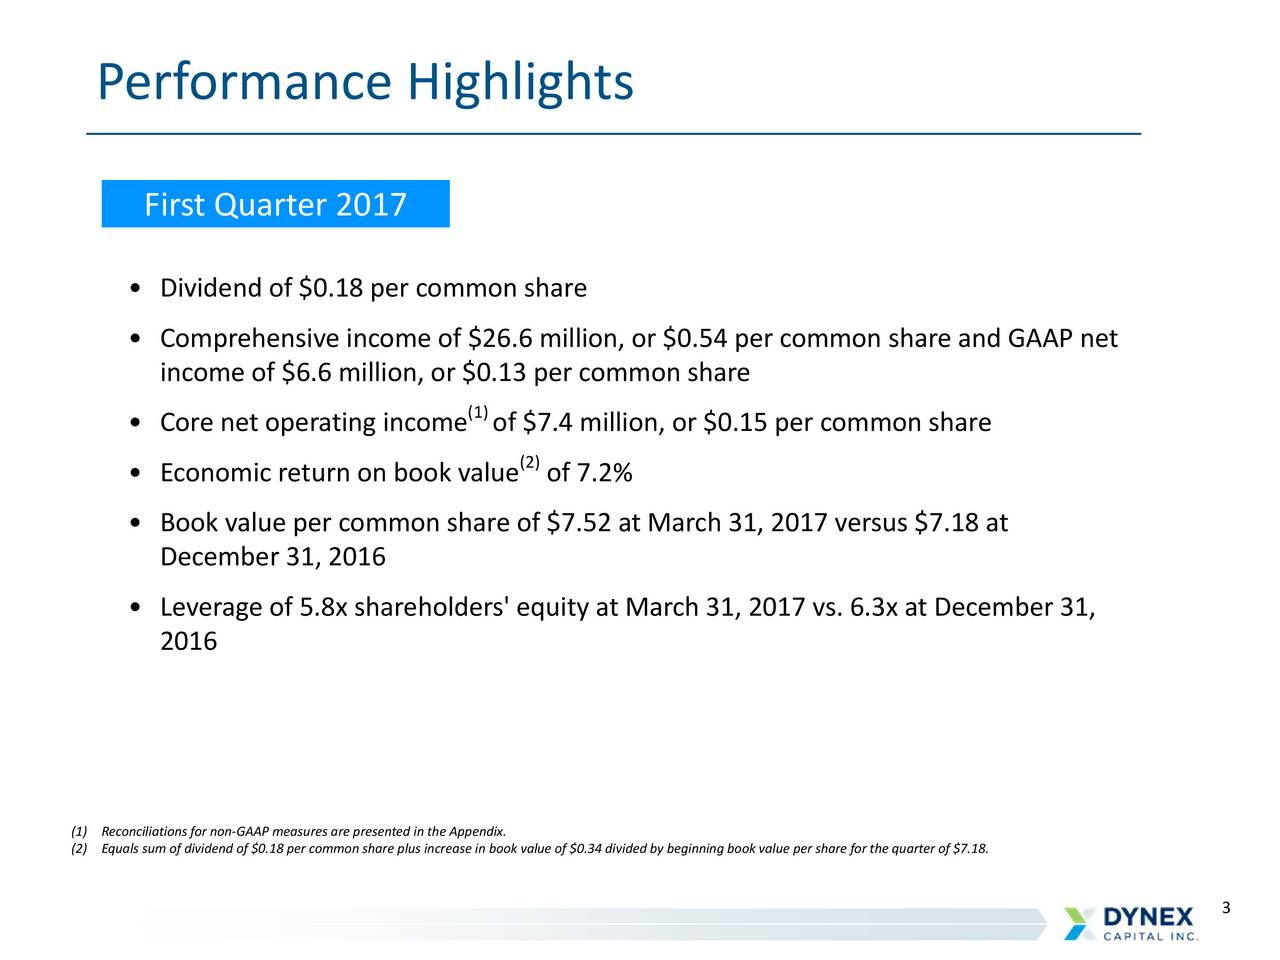 First Quarter 2017 Dividend of $0.18 per common share Comprehensive income of $26.6 million, or $0.54 per common share and GAAP net income of $6.6 million, or $0.13 per common share (1) Core net operating income of $7.4 million, or $0.15 per common share (2) Economic return on book value of 7.2% Book value per common share of $7.52 at March 31, 2017 versus $7.18 at December 31, 2016 Leverage of 5.8x shareholders' equity at March 31, 2017 vs. 6.3x at December 31, 2016 (1)Reconciliations for non-GAAP measures are presented in the Appendix. (2)Equals sum of dividend of $0.18 per common share plus increase in book value of $0.34 divided by beginning book value per share for the quarter of $7.18. 3